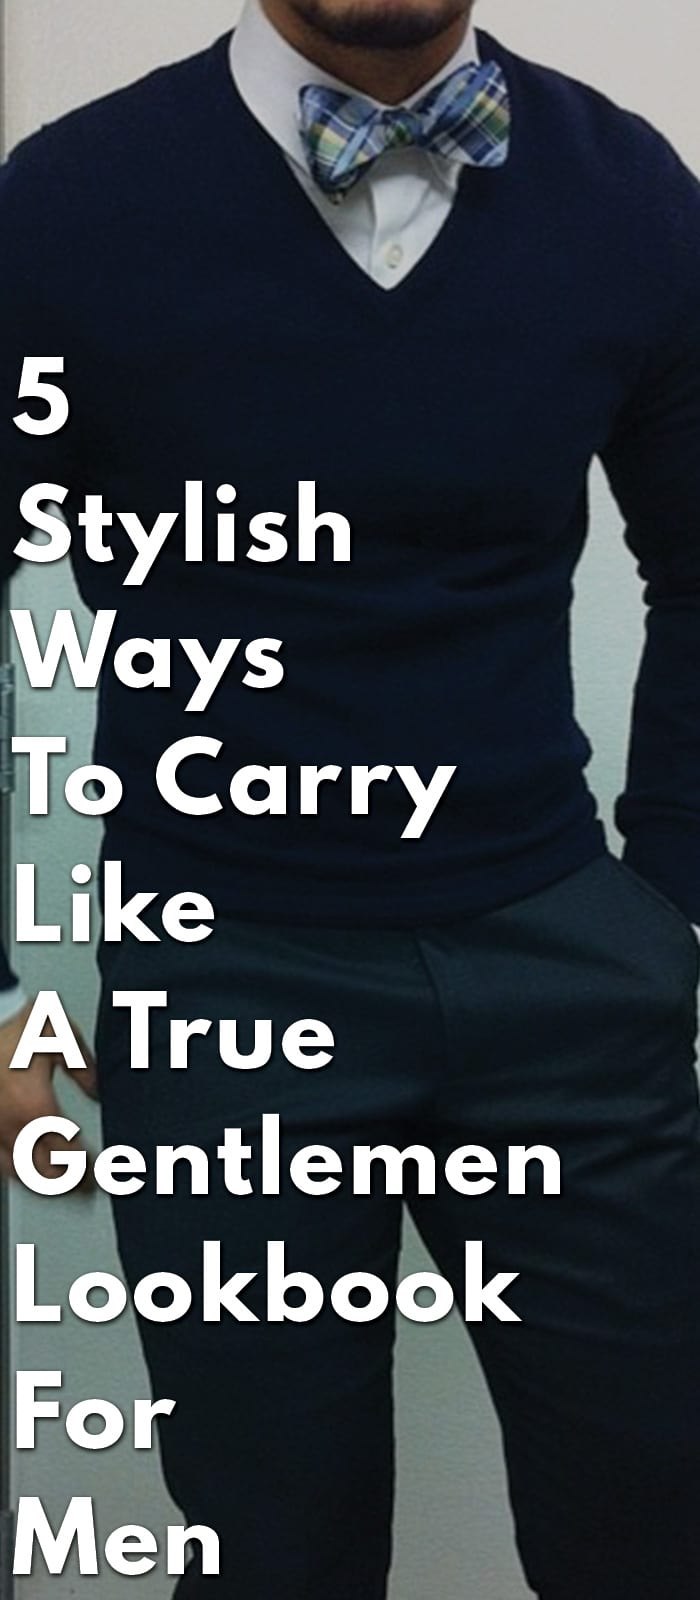 5-Stylish-Ways-To-Carry-Like-A-True-Gentlemen--Lookbook-For-Men